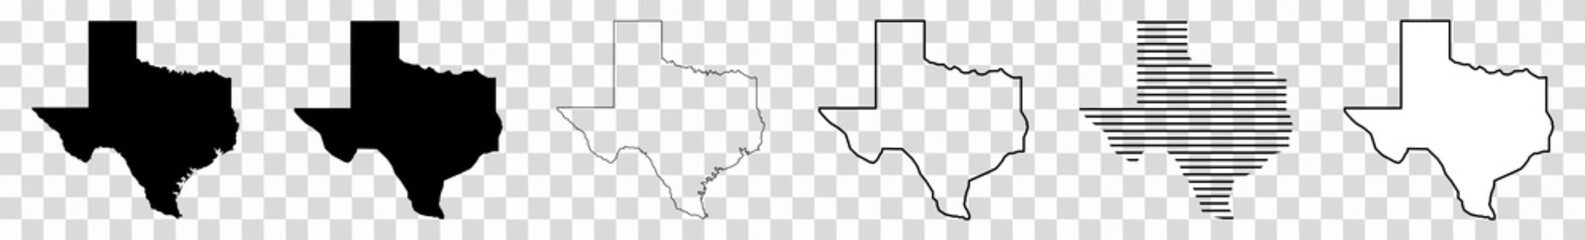 Texas Map Black | State Border | United States | US America | Transparent Isolated | Variations